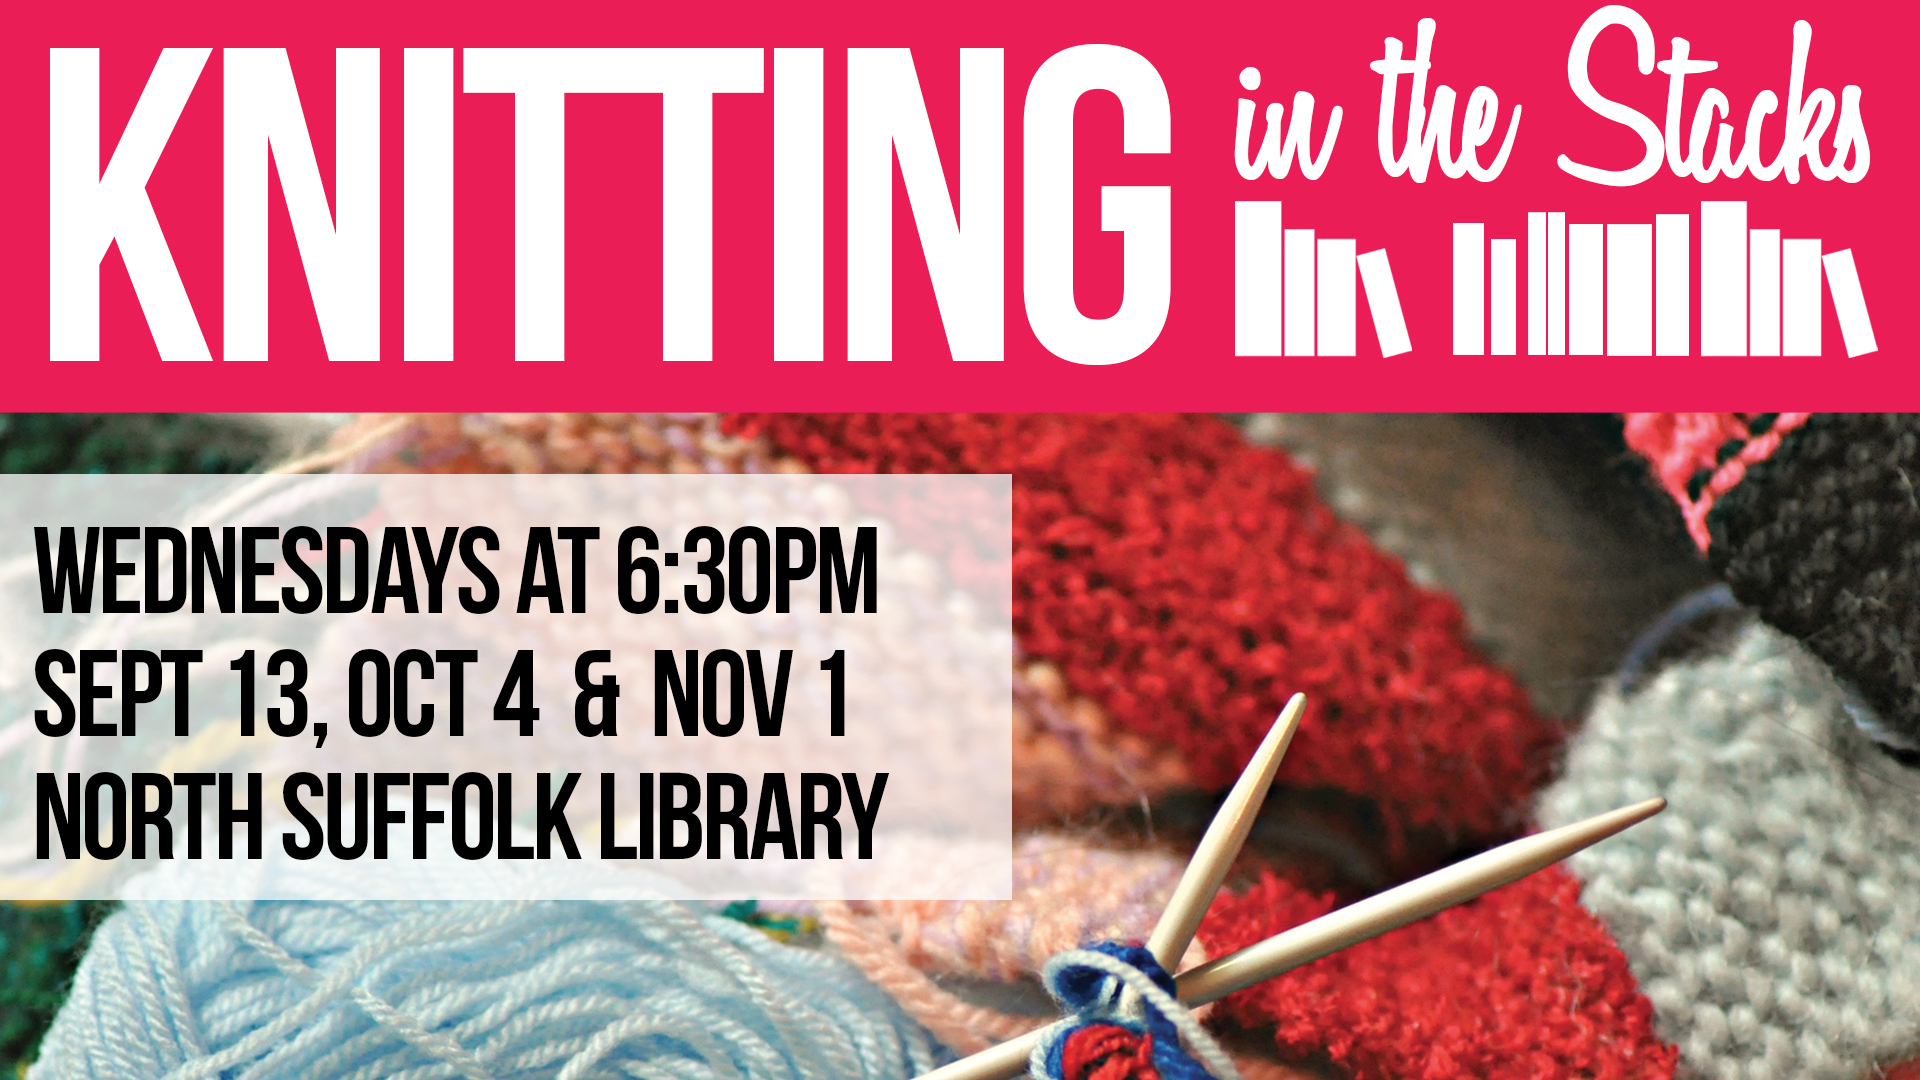 Knitting in the Stacks